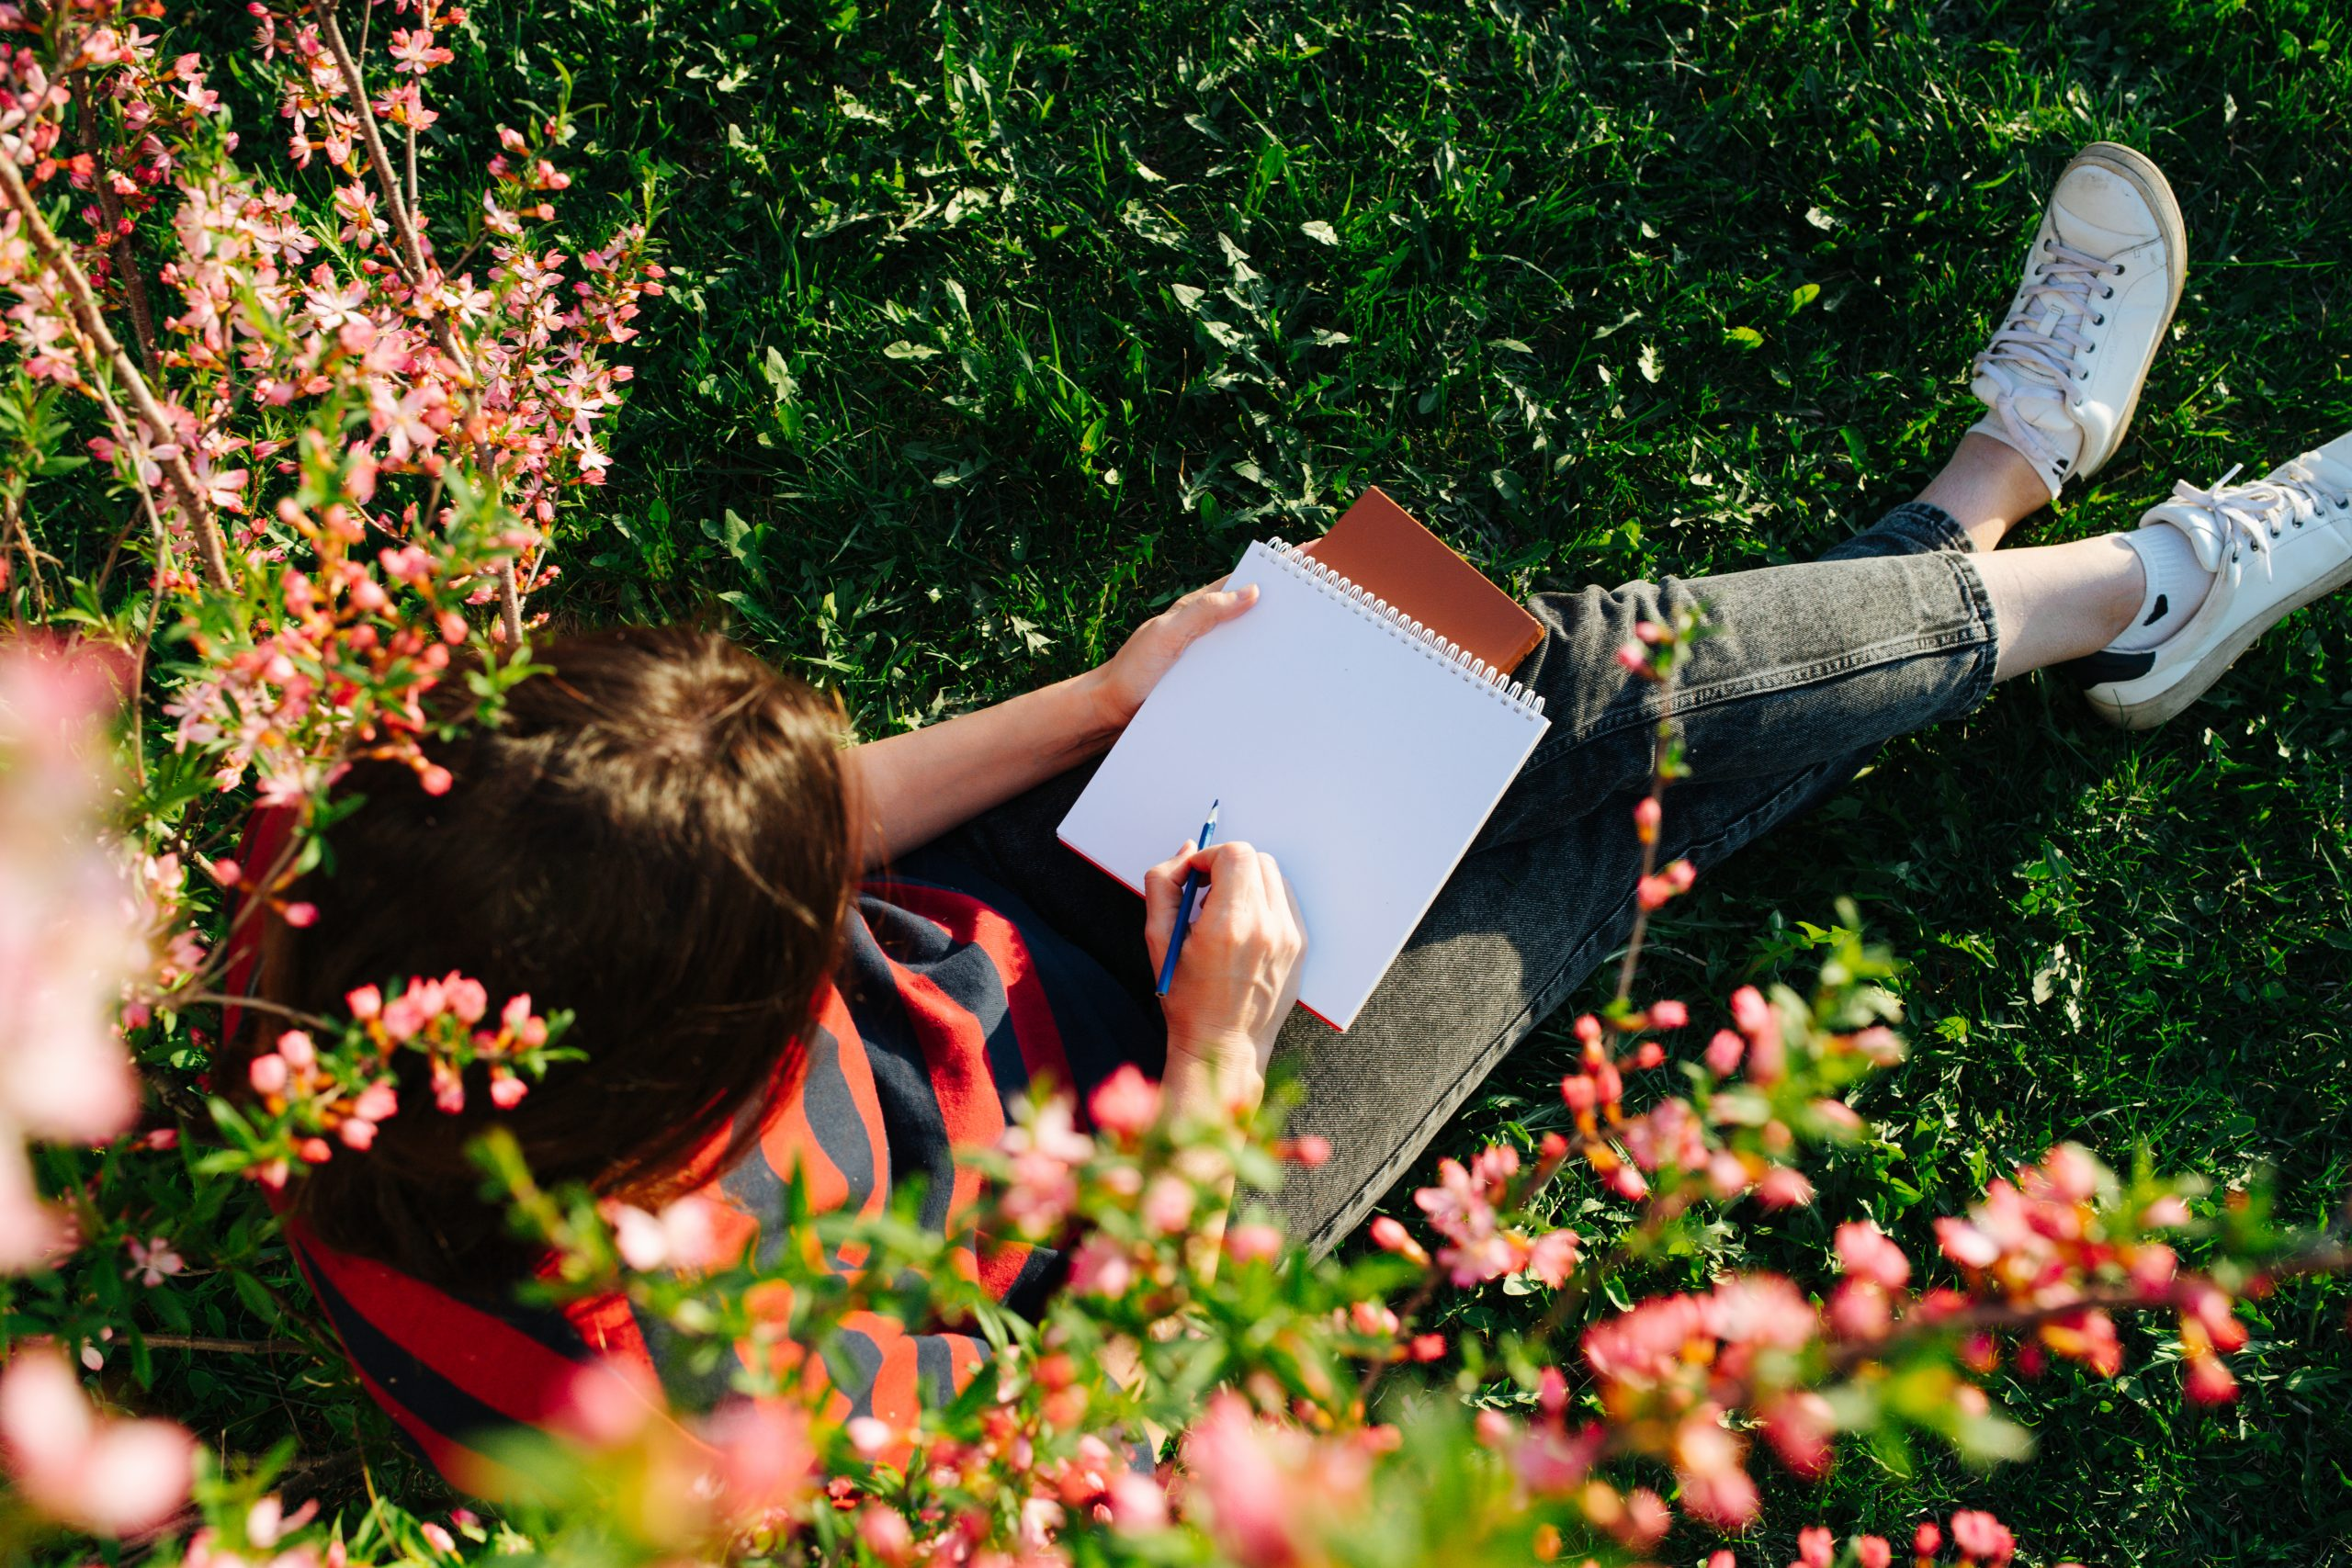 Girl sitting on grass in a flowered garden with a notepad and pen in her hands.